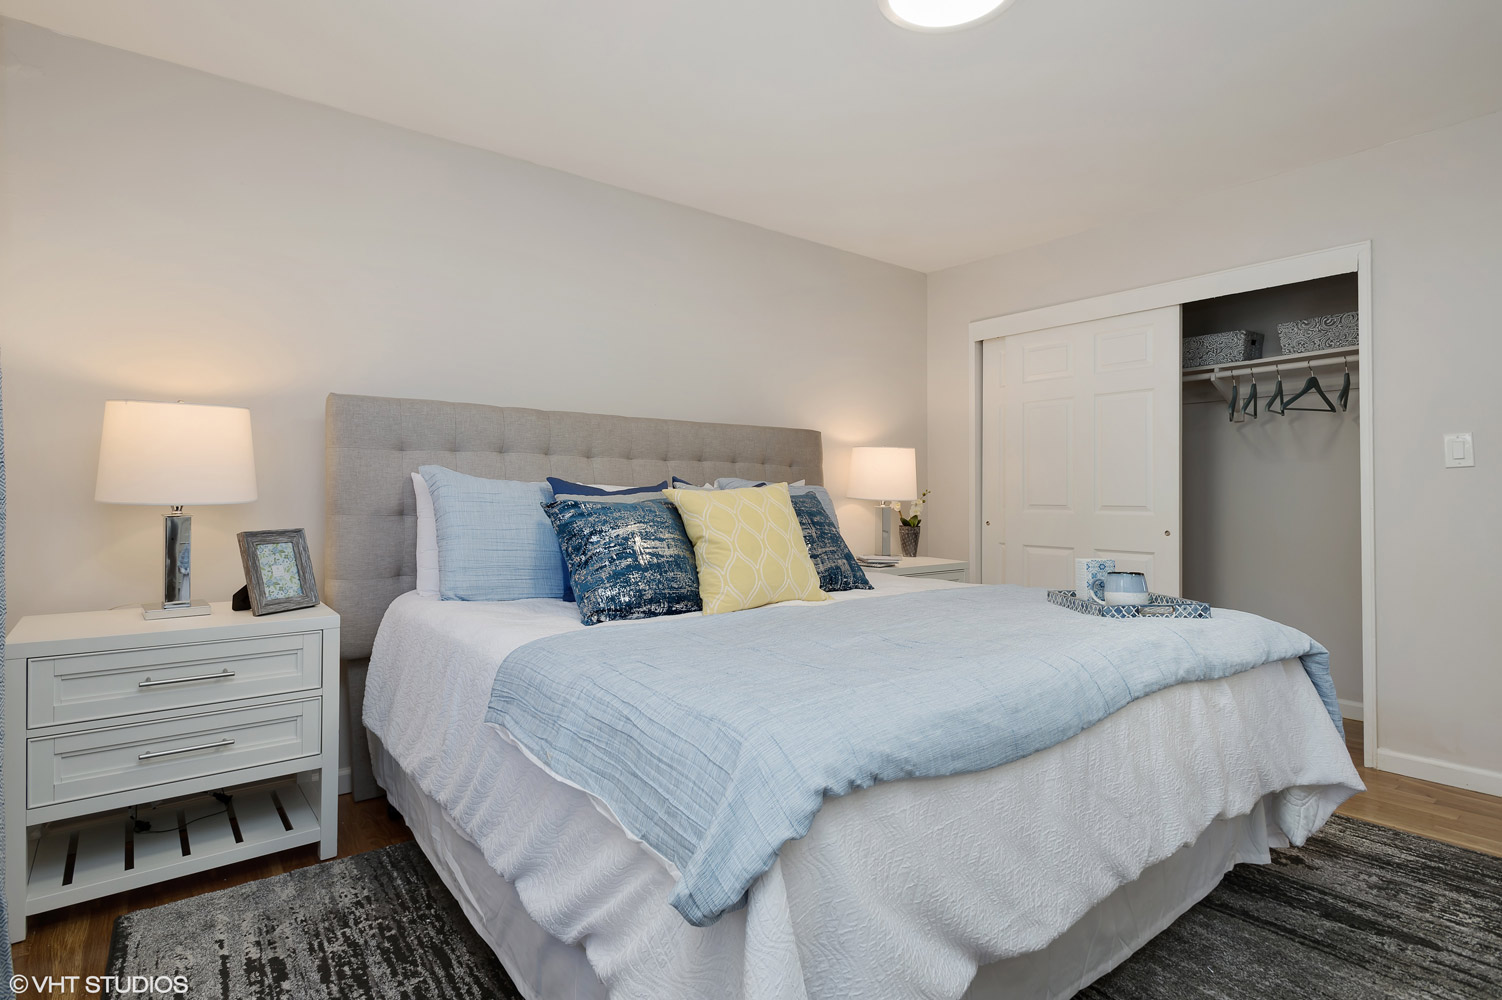 Bedroom with Attached Closet at Grandview Gardens Apartments in Edison, New Jersey